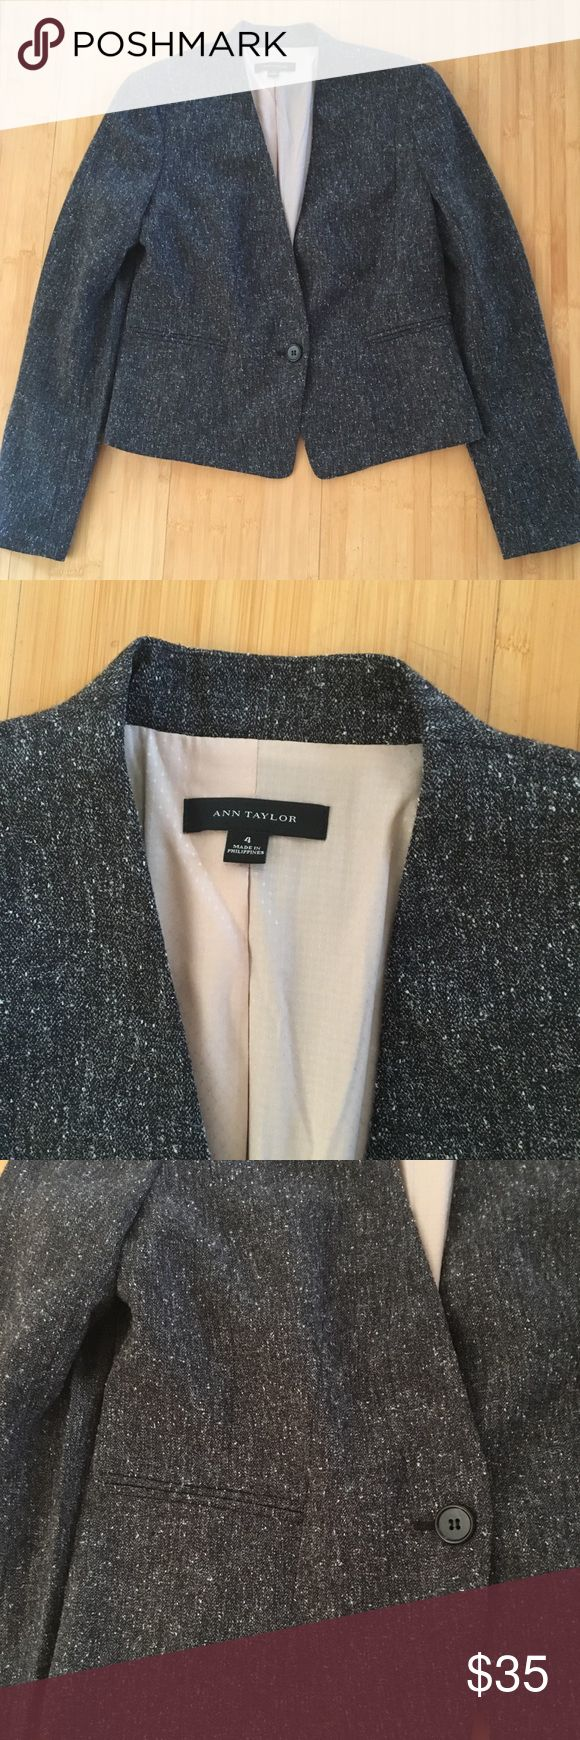 Ann Taylor Grey Tweed Blazer Ann Taylor grey tweed blazer. Like new. Size 4. Ann Taylor Jackets & Coats Blazers